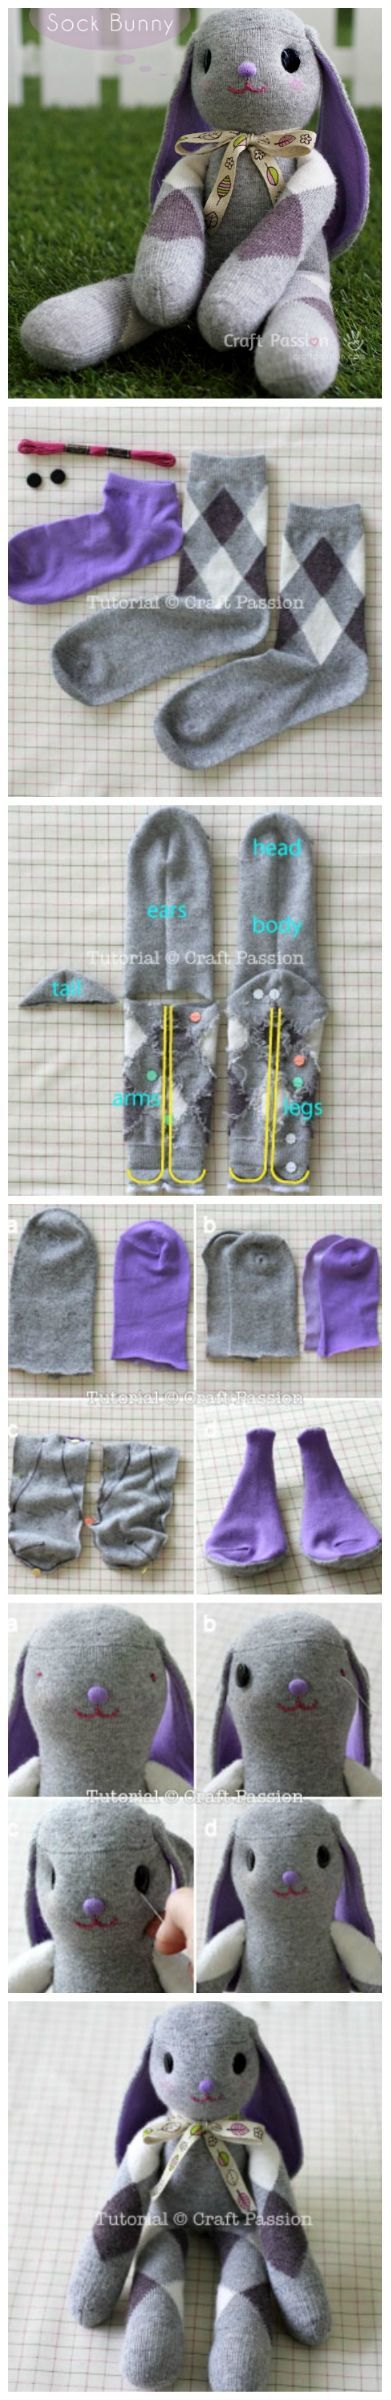 DIY Adorable Sock Bunny | Socks | Pinterest | Sock Bunny, Bunnies and Socks